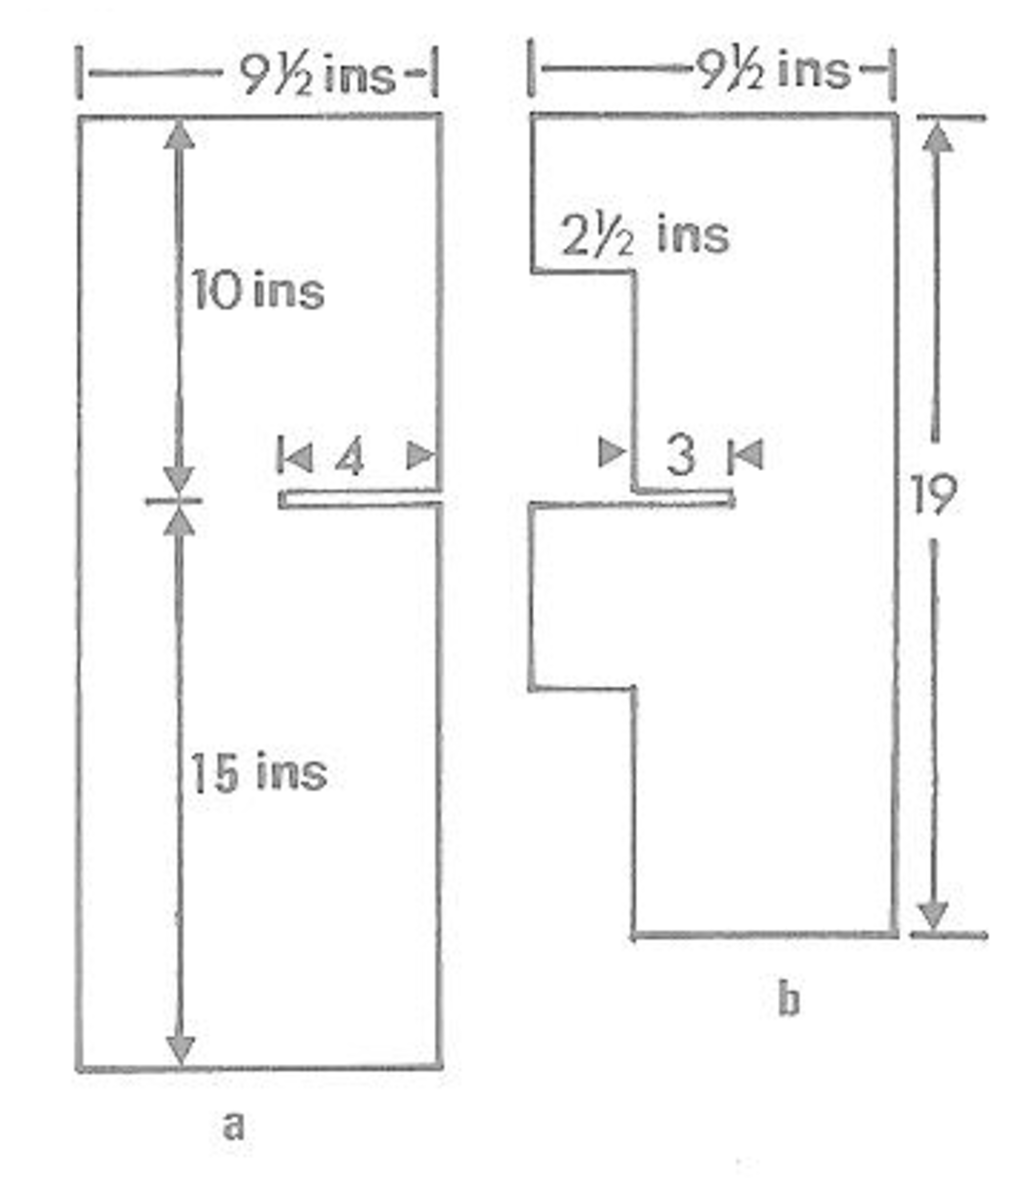 Figure 4a - Dollhouse Floor Partition and  Figure 4b - Dollhouse Upright Partition